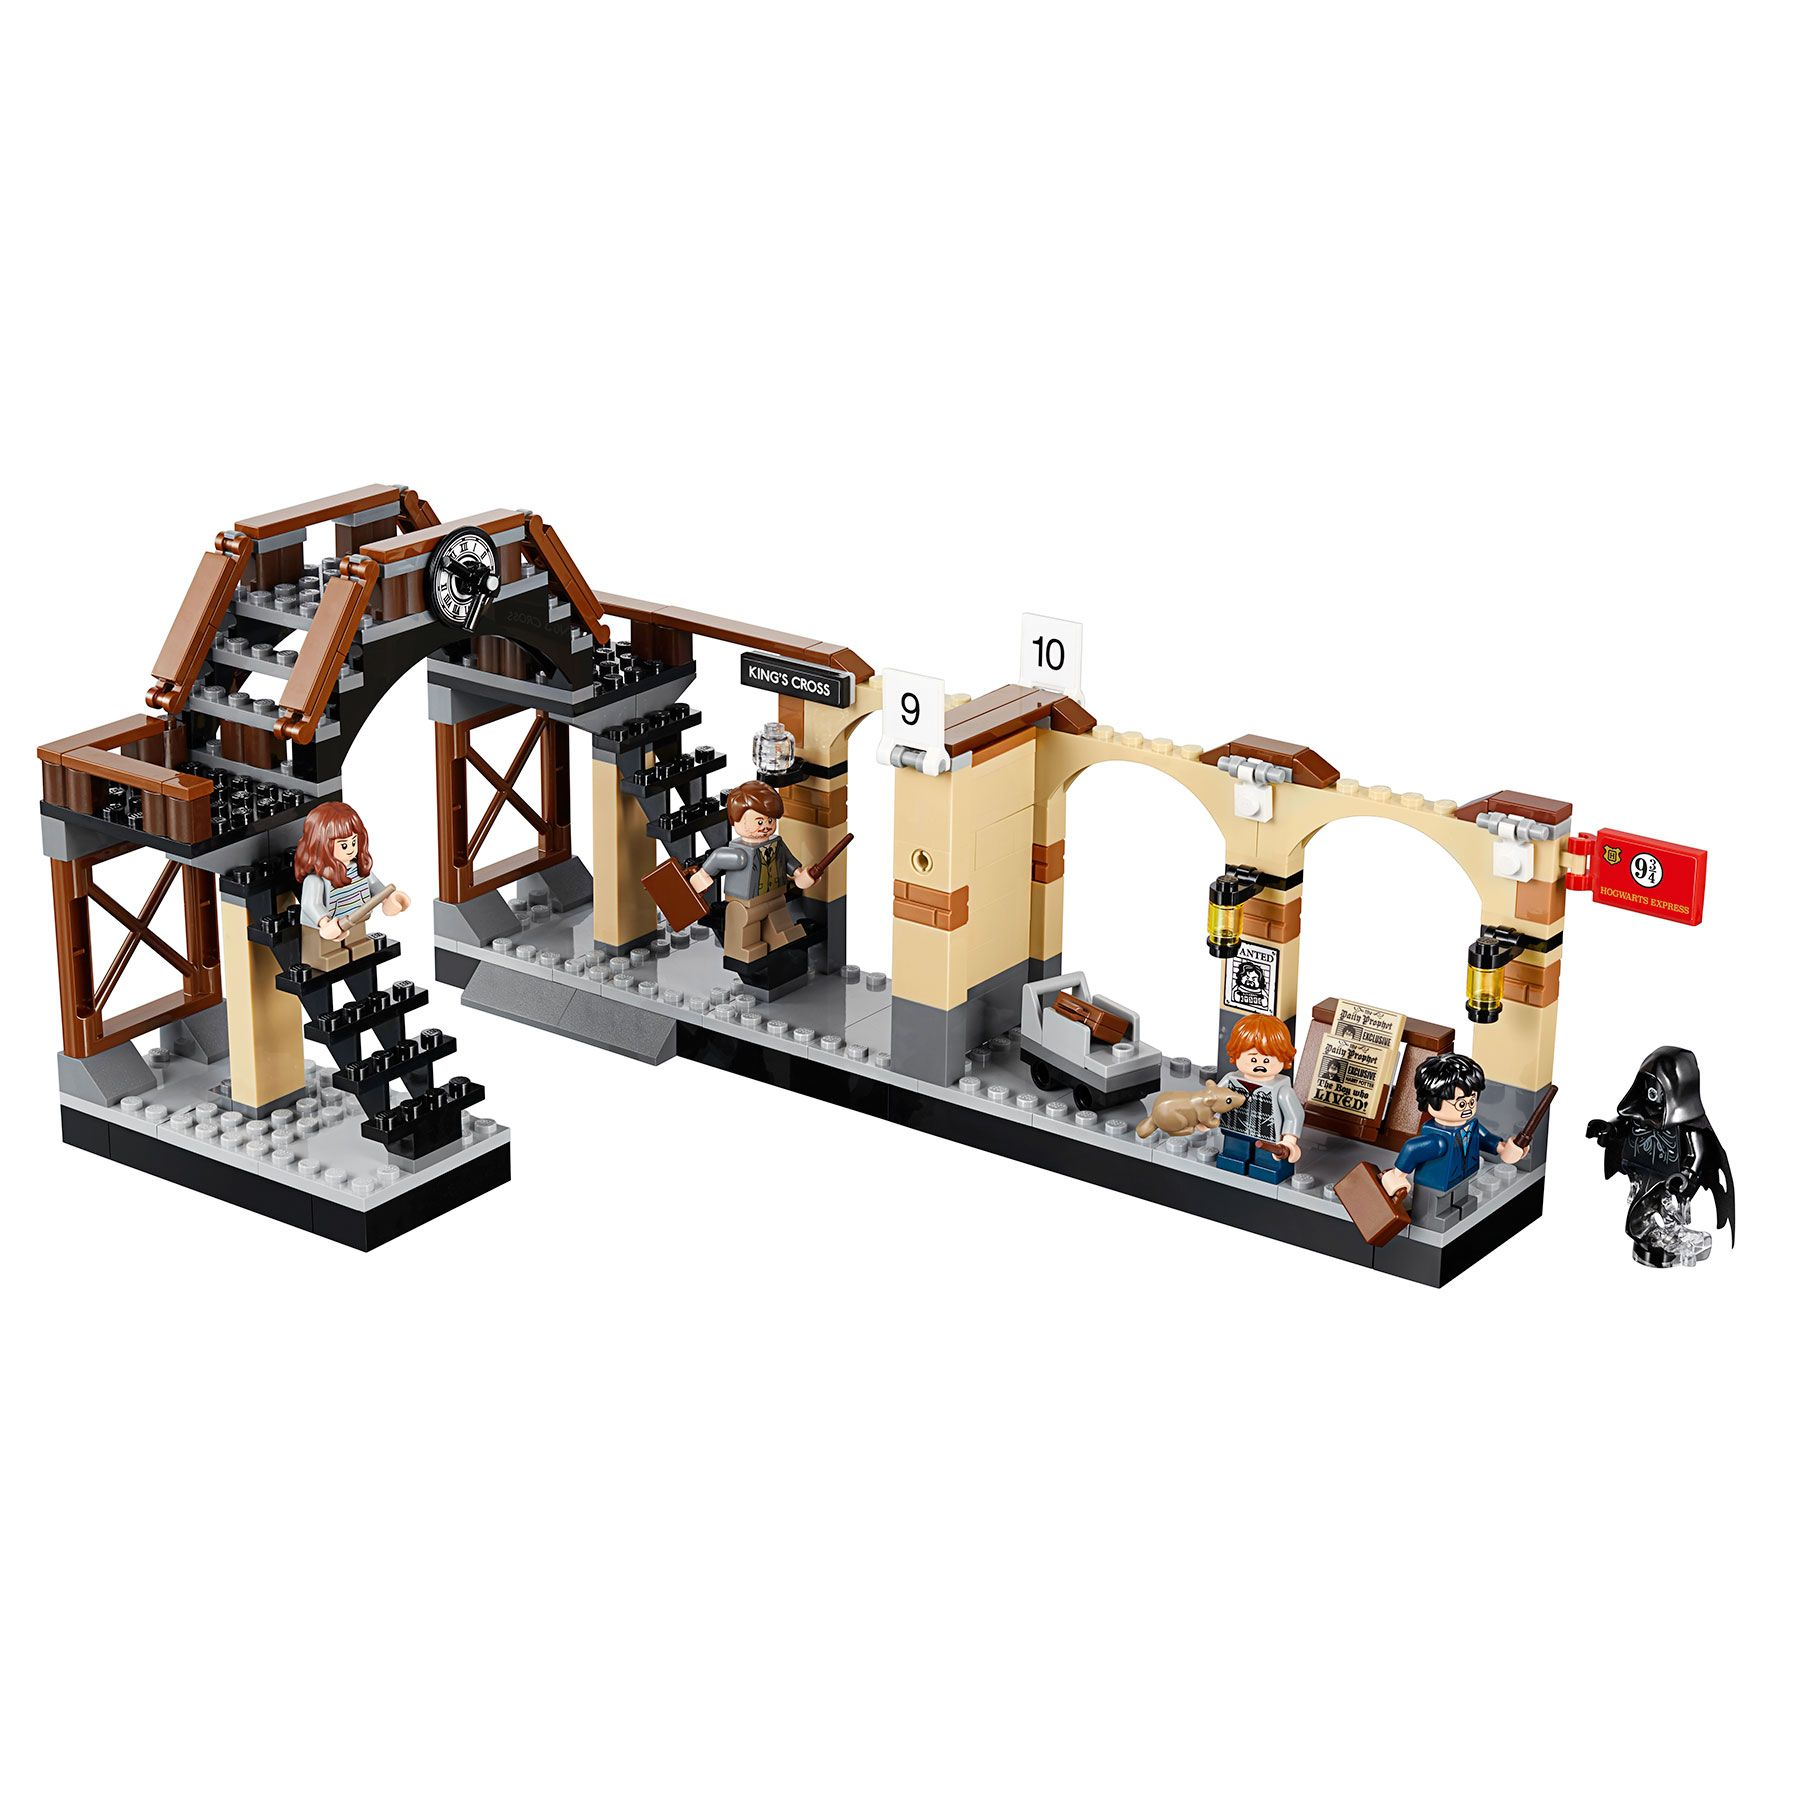 LEGO Harry Potter 75955 Hogwarts™ Express LEGO_Harry Potter_75955_The_Hogwarts_Express_imp01.jpg